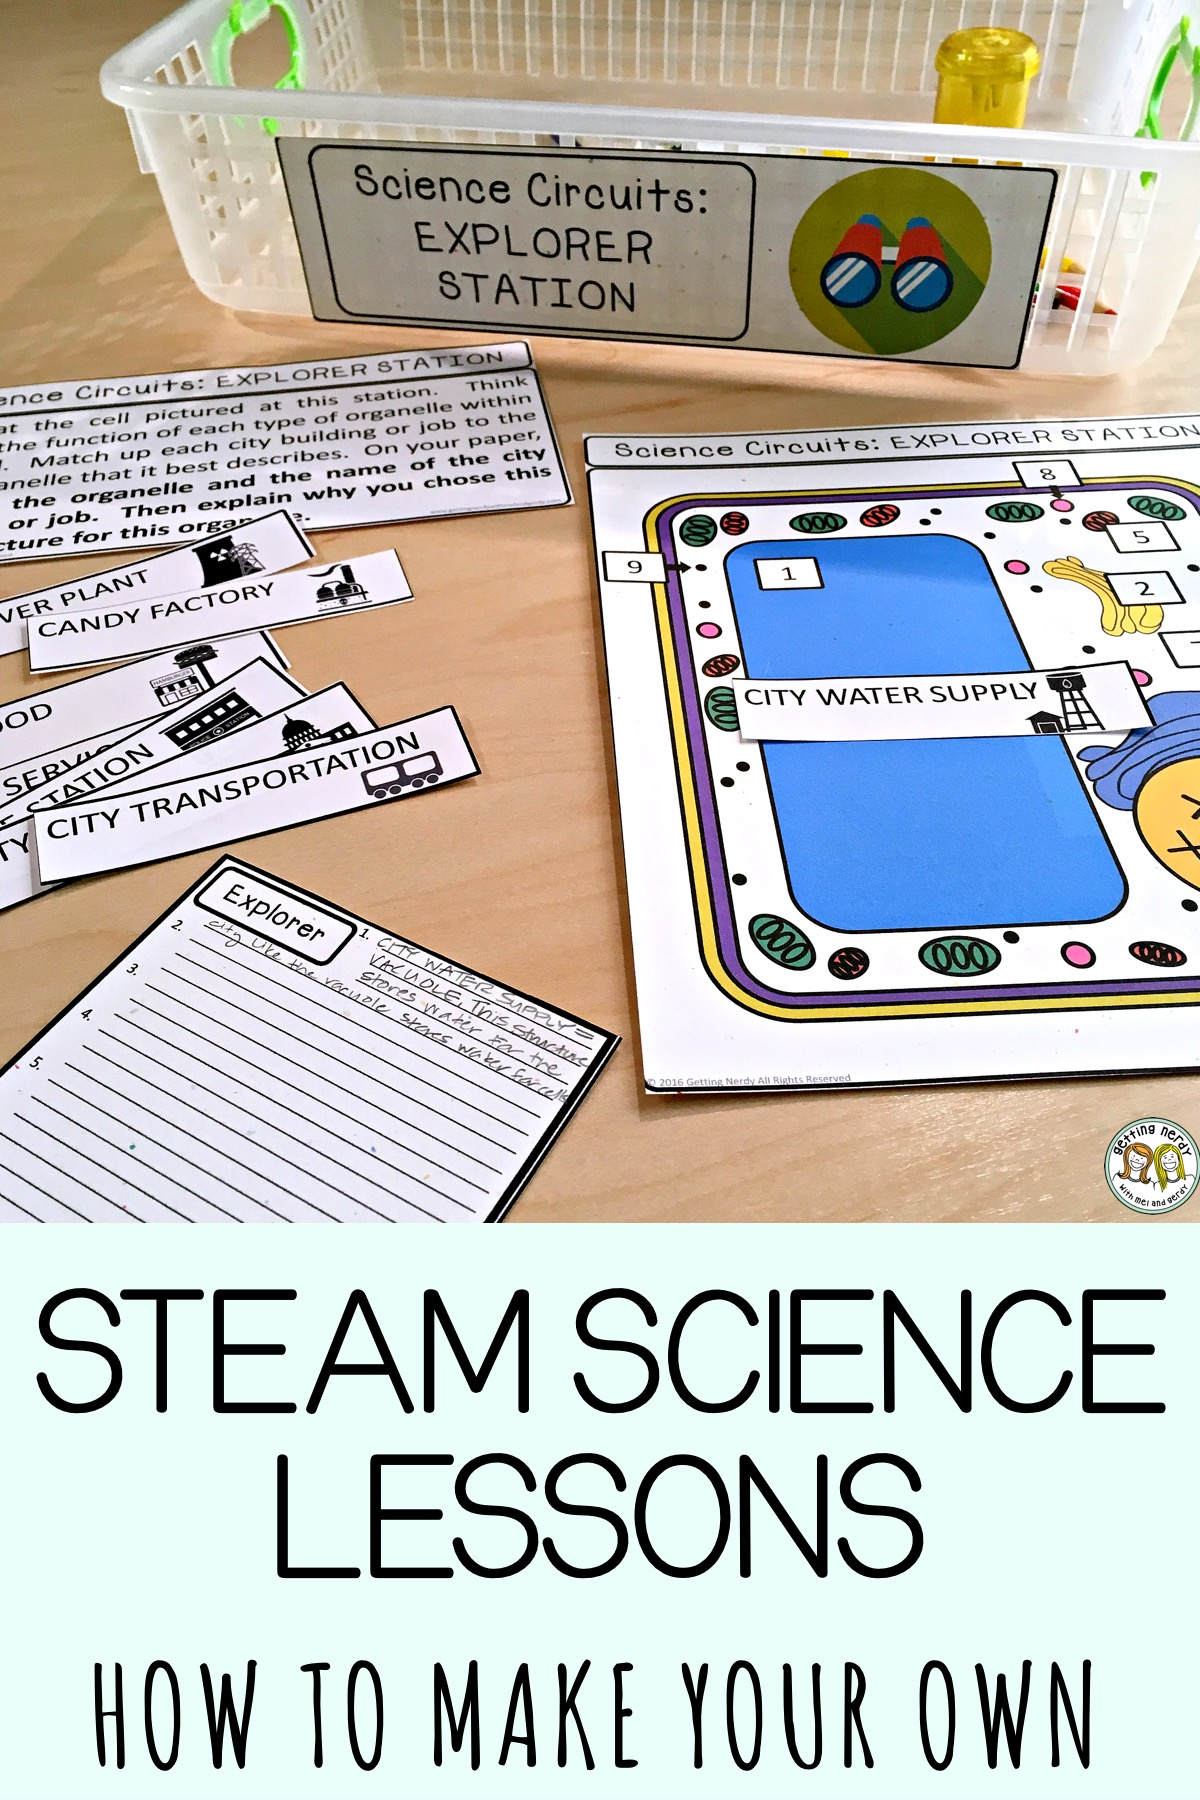 How to Create your own Cross-Curricular Science STEAM Lab Stations that are Student-led and easy to implement #gettingnerdyscience #STEAM #STEM #labstations